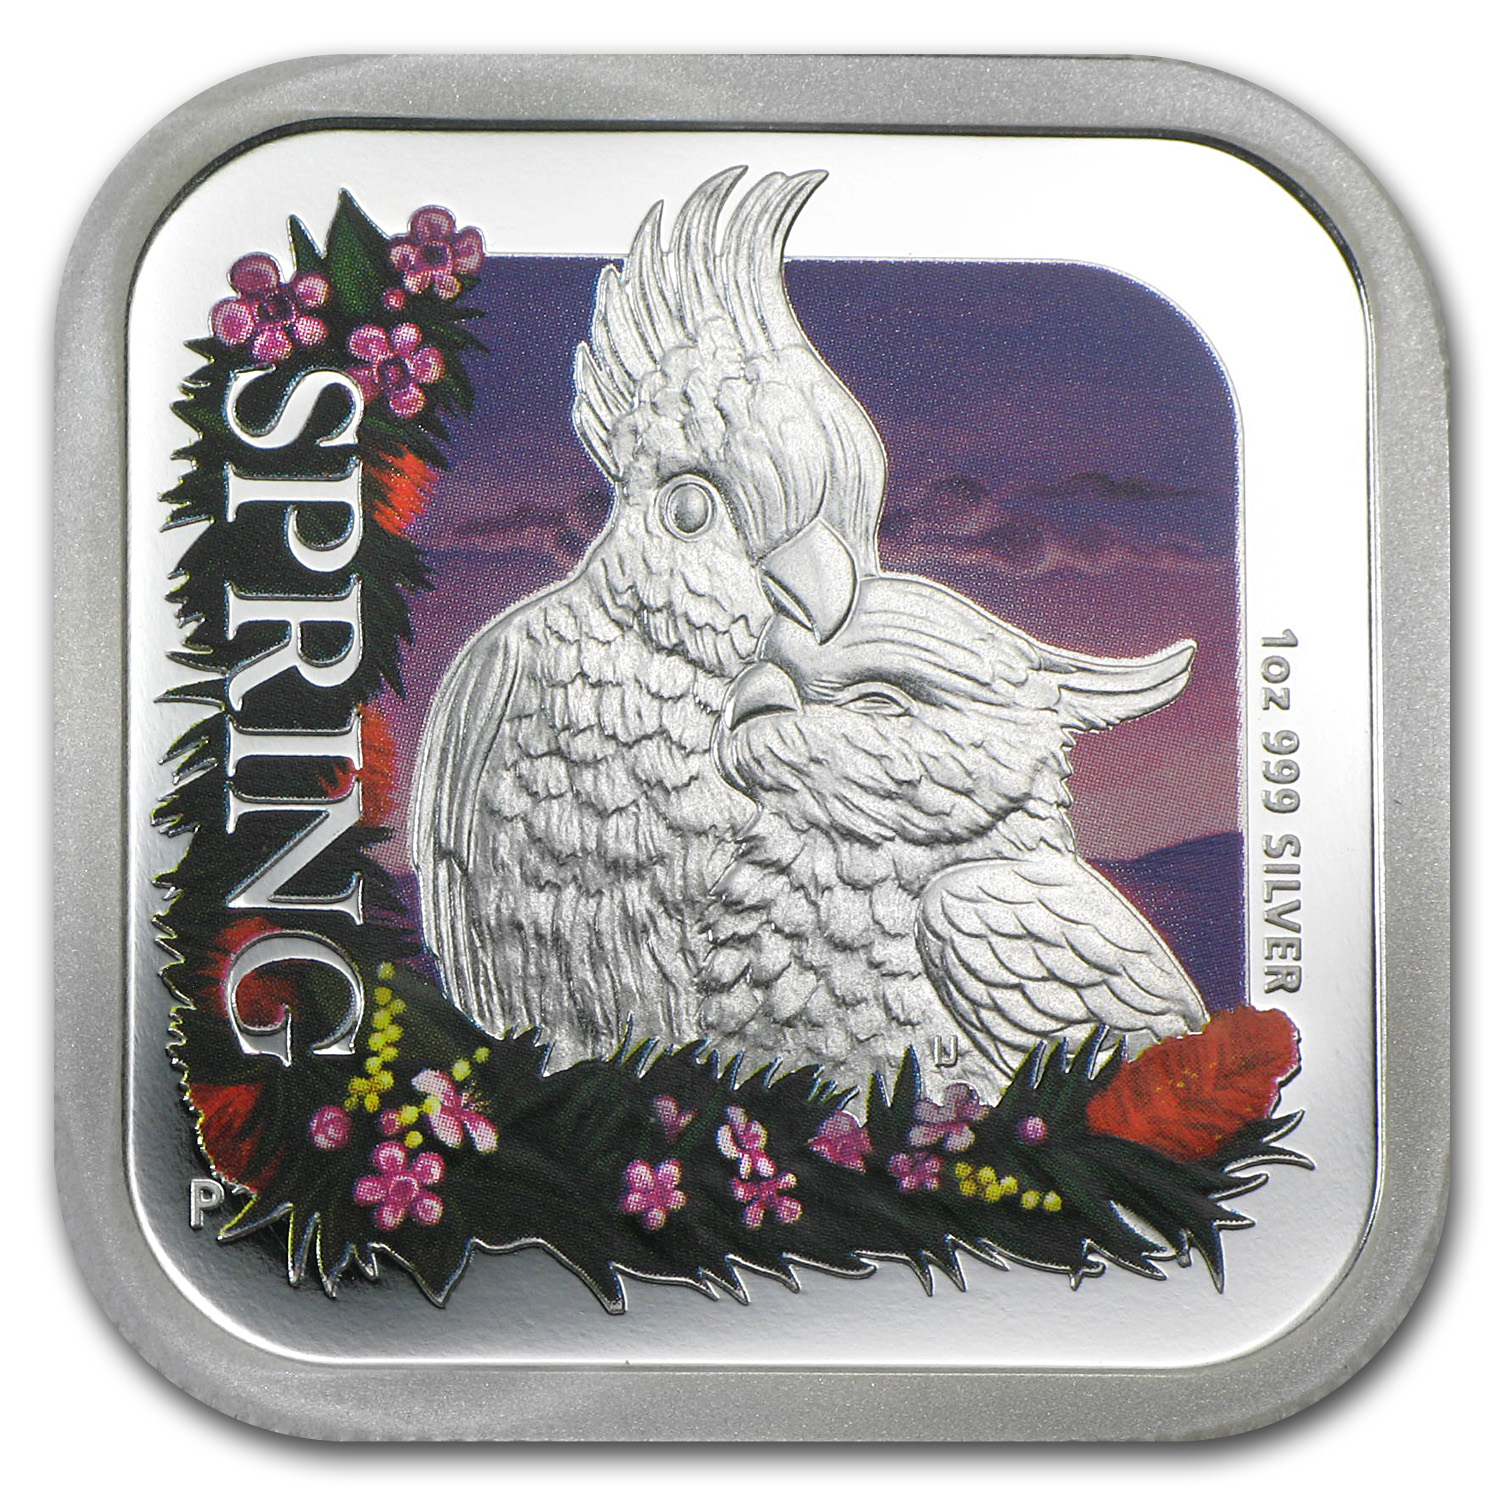 2013 Australia 1 oz Silver Seasons Spring Proof